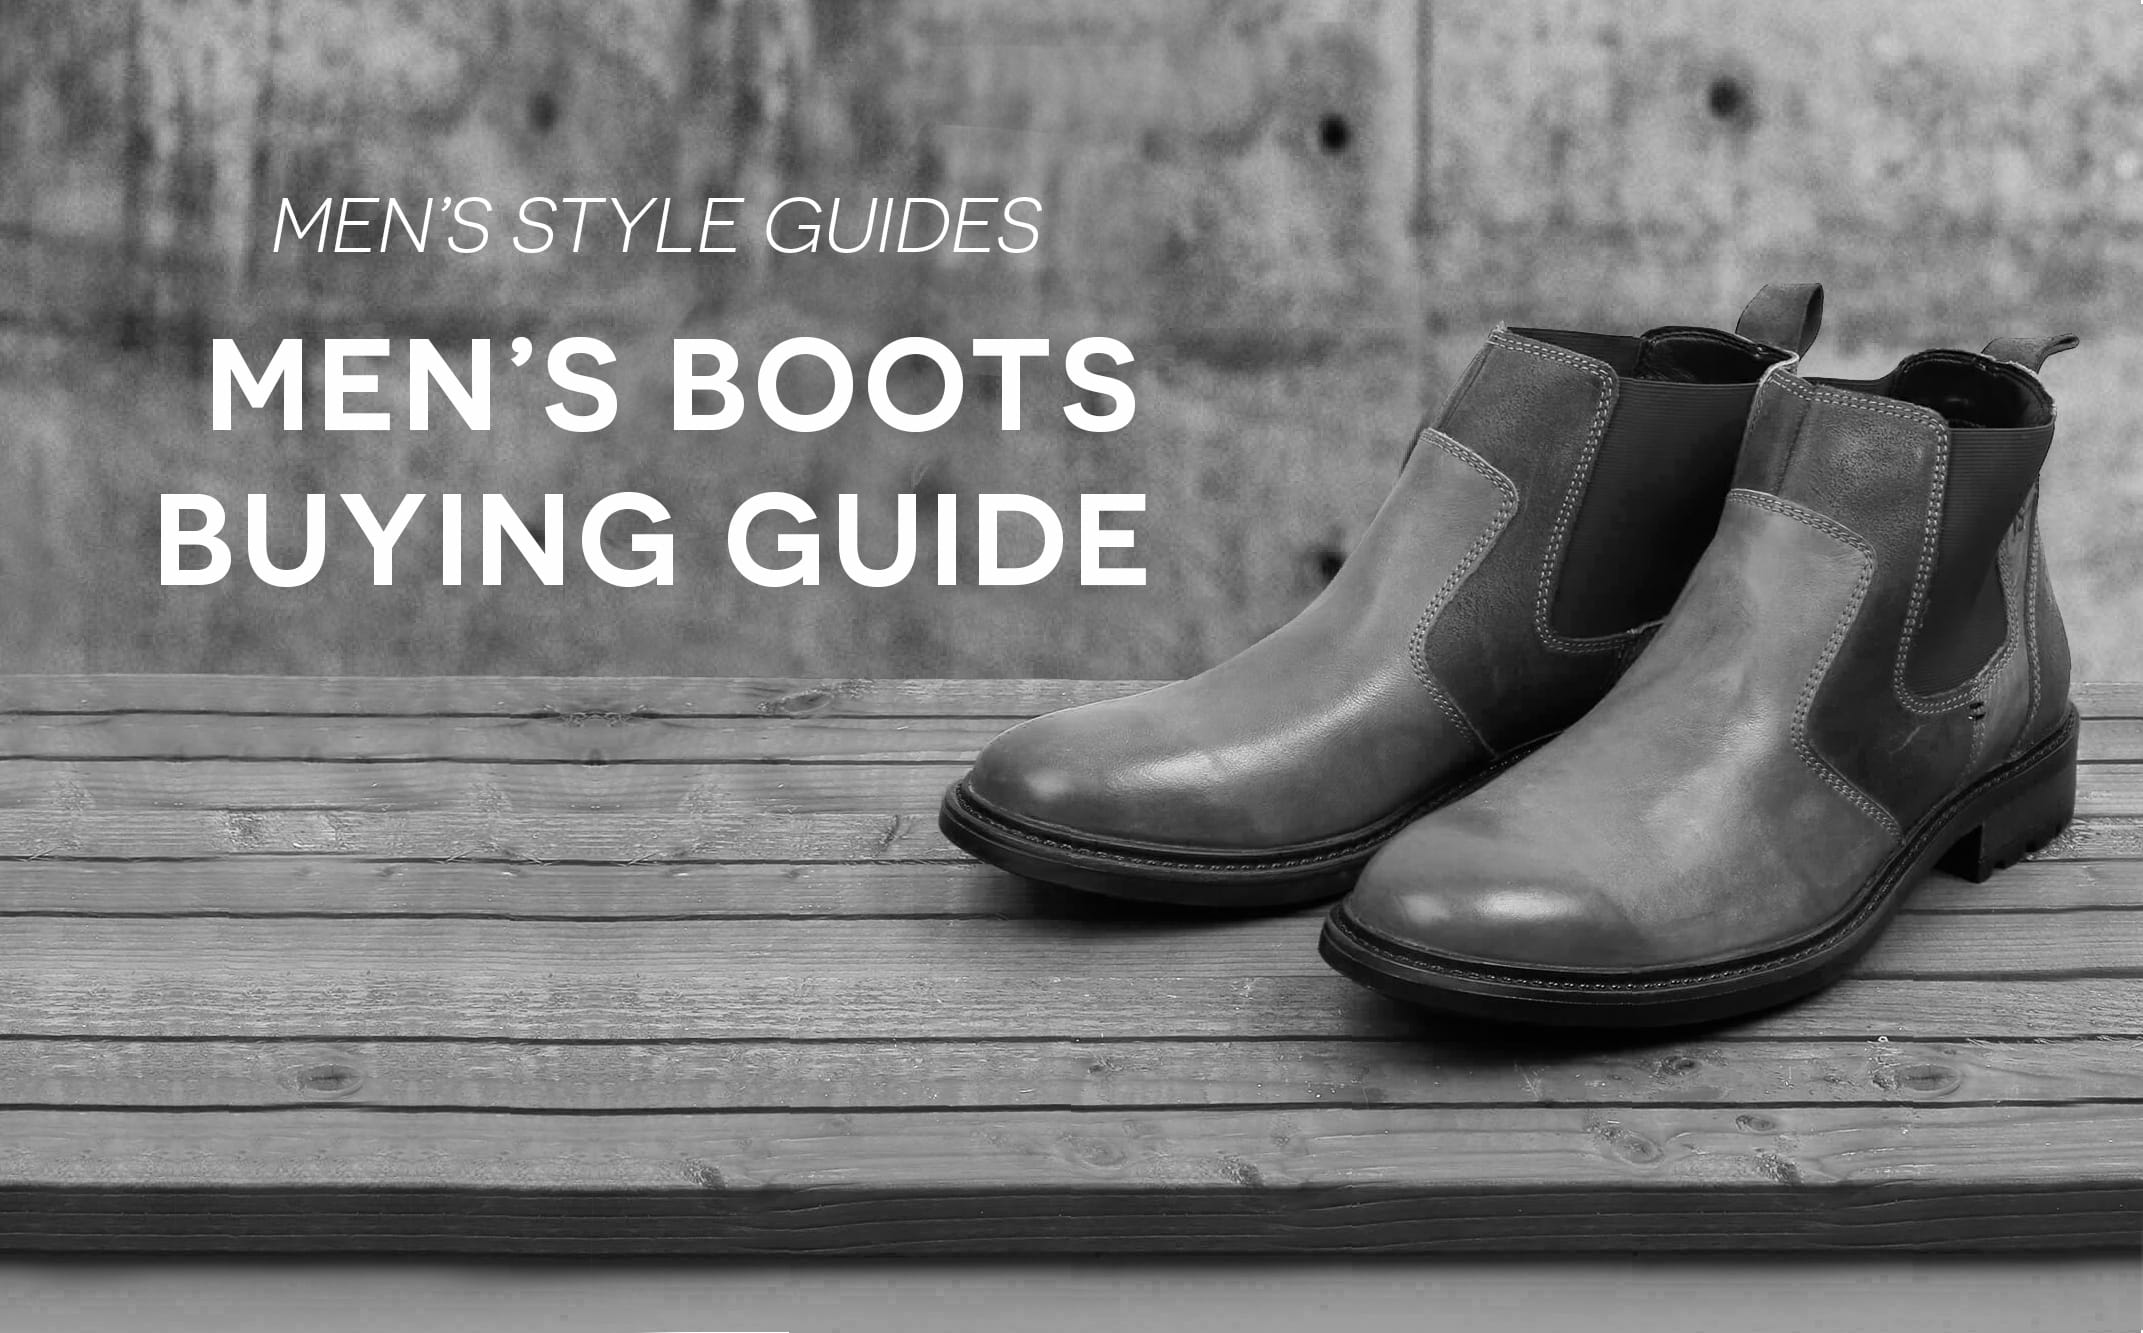 e291568cddb89e The complete men's boots buying guide | Home › Blog